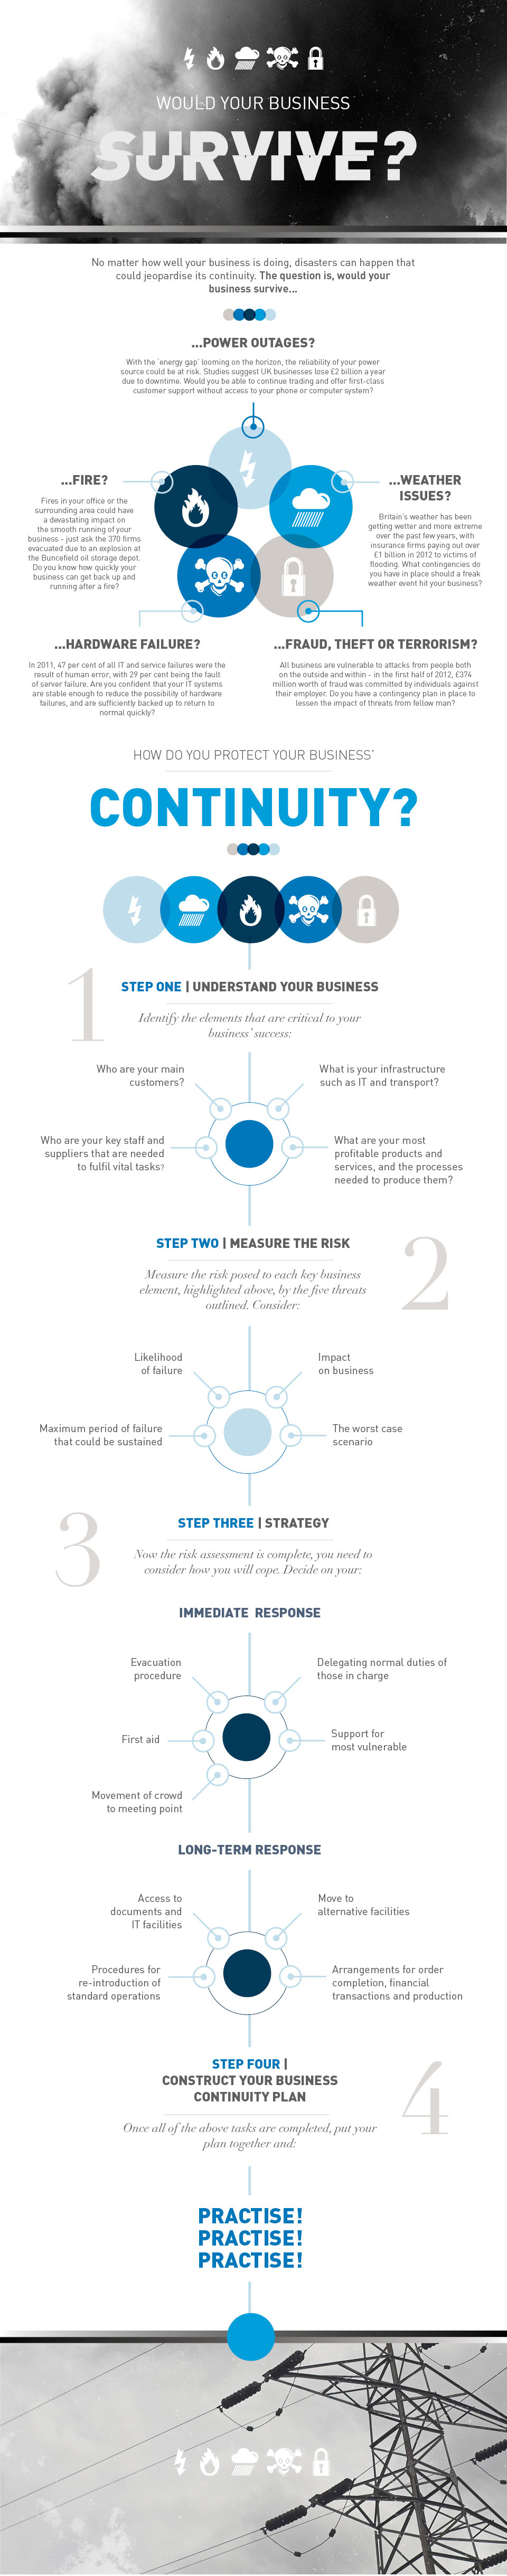 Business Continuity Risk Management-Infographic